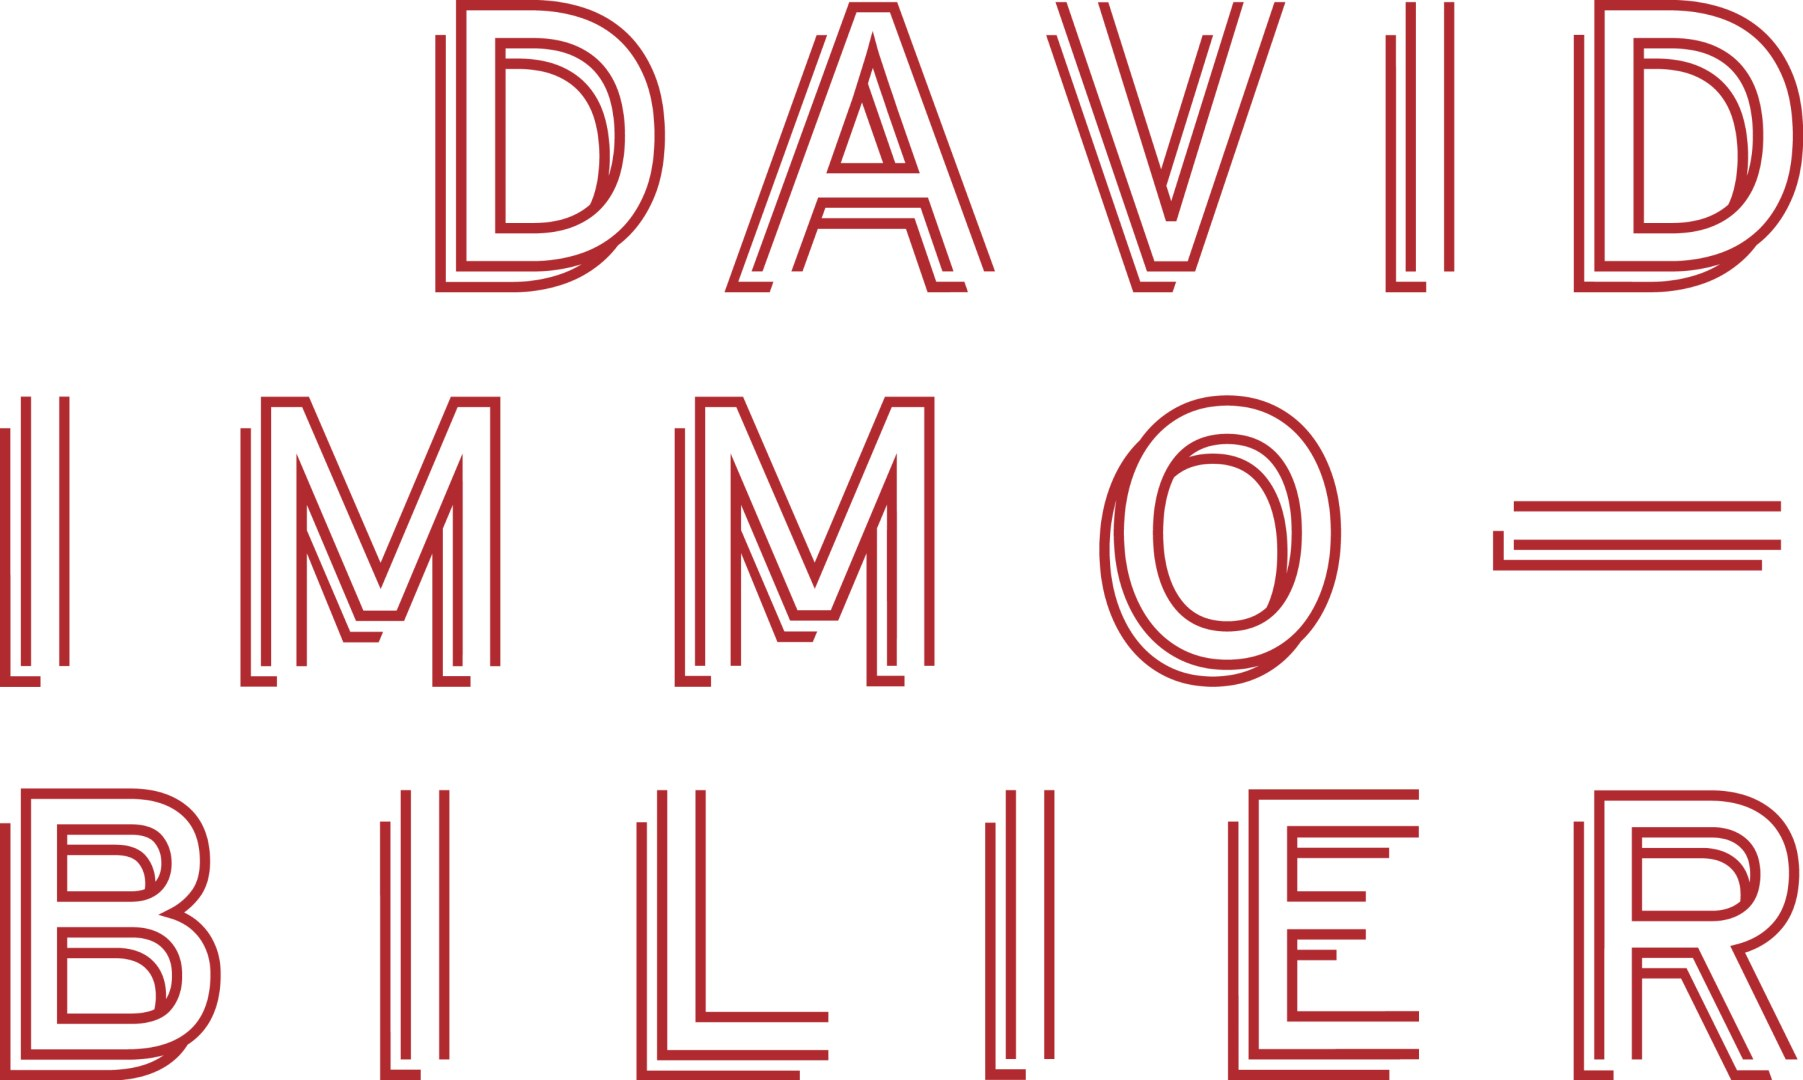 Real estate agency DAVID IMMOBILIER in Paris